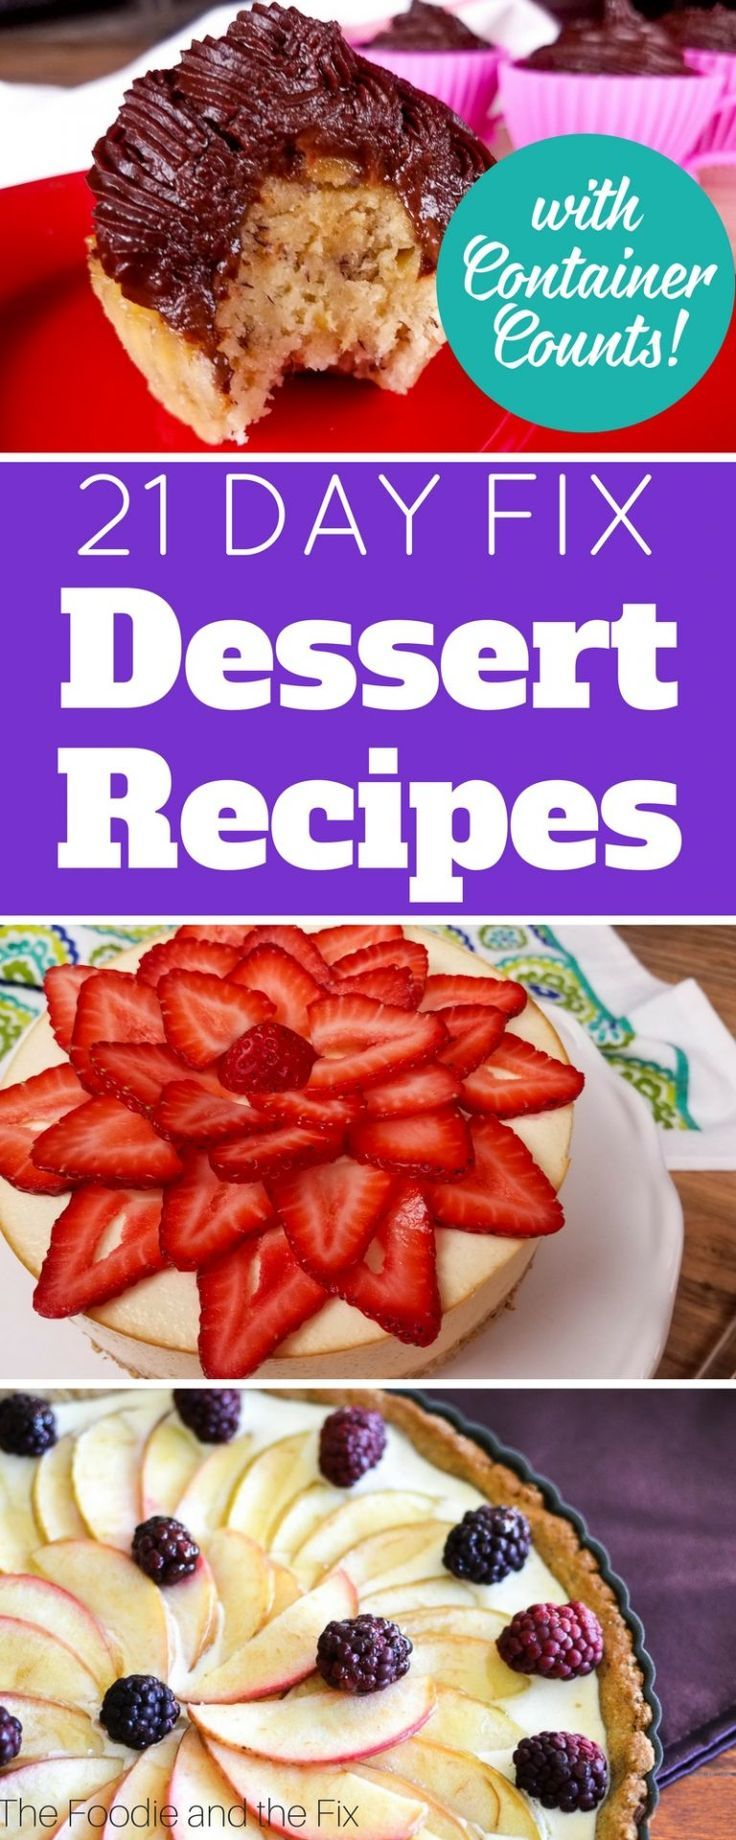 328 best healthy dessert recipes images on pinterest healthy meals these 21 day fix dessert recipes are the perfect way to end a successful day on 21 day fix dessertsdiet forumfinder Images